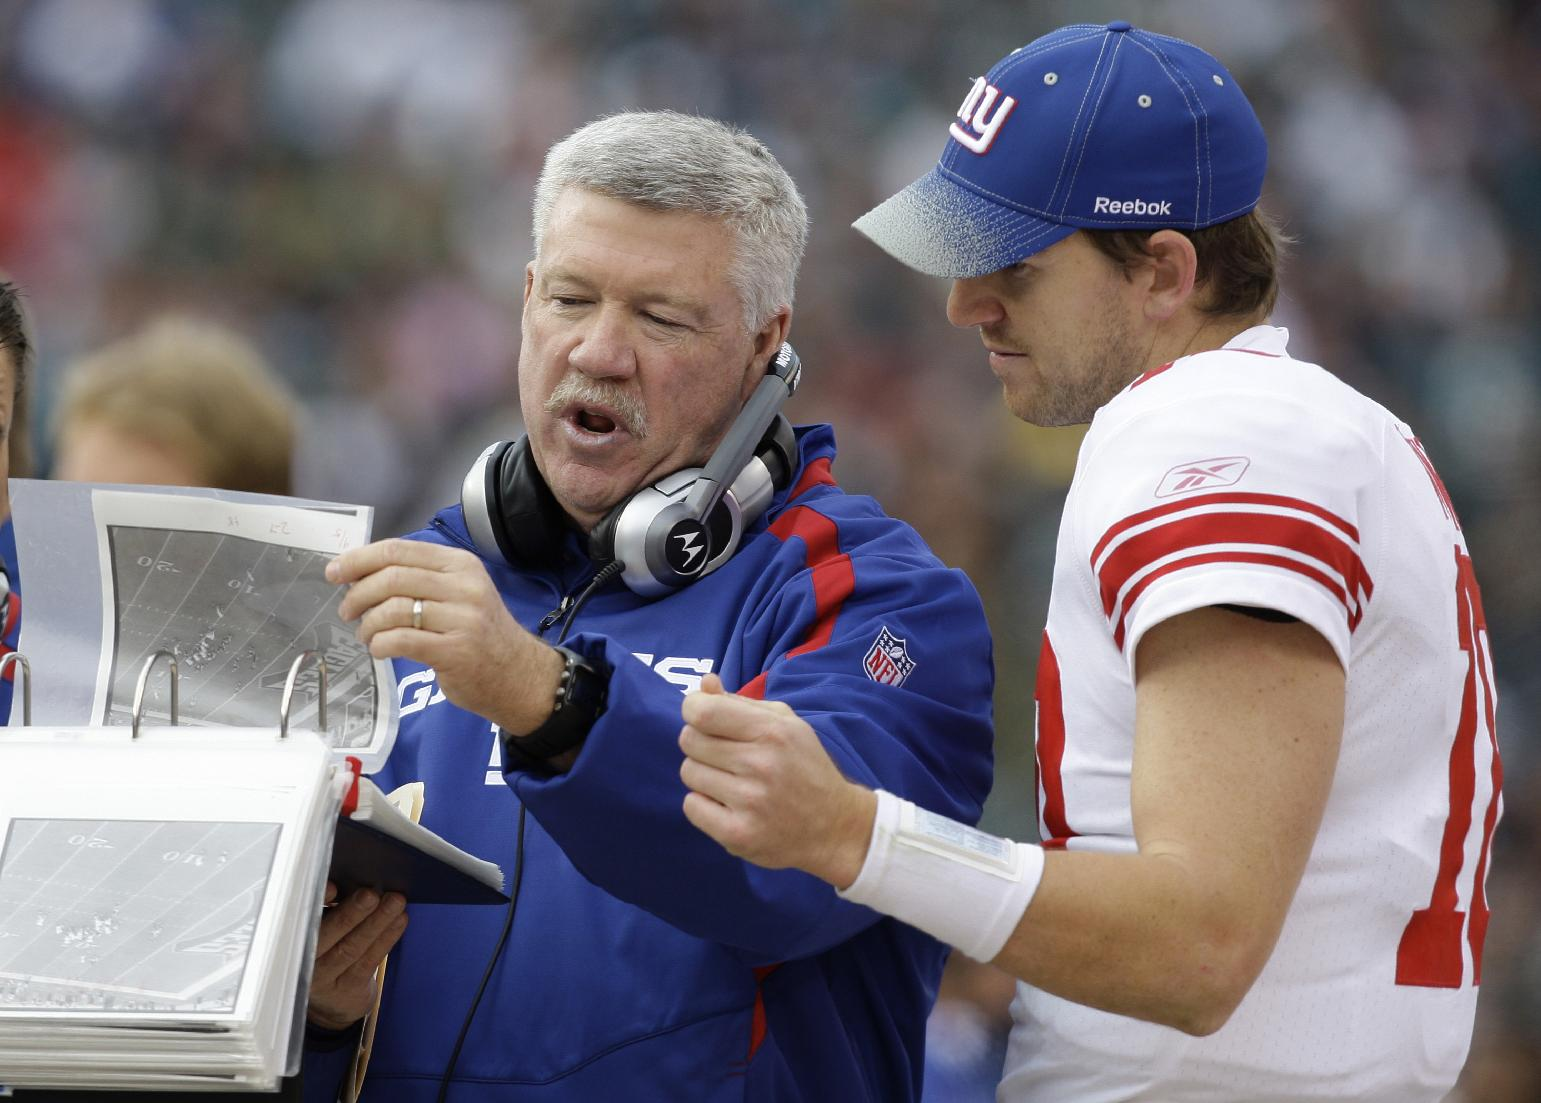 In this Nov. 1, 2009, file photo, New York Giants quarterback Eli Manning (10) goes over game photos with offensive coordinator Kevin Gilbride during an NFL football game against the Philadelphia Eagles in Philadelphia. Gilbride has retired as offensive coordinator for the Giants. The 62-year-old Gilbride, a veteran of 39 years in coaching, said Thursday, Jan. 2, 2014, he wants to devote more time to his family